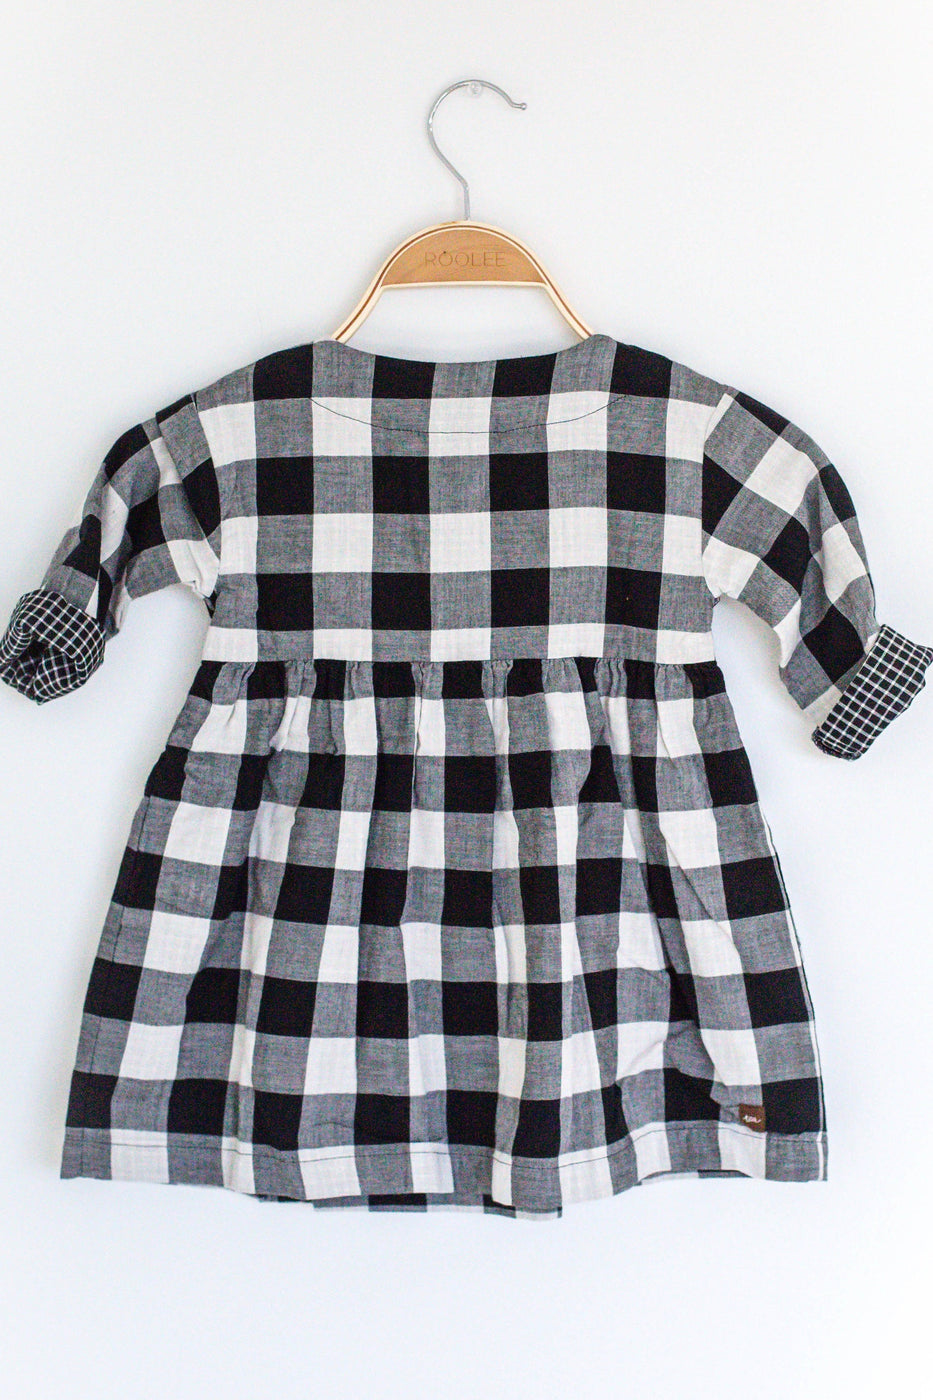 Cute And Comfy Plaid Dress For Babies | ROOLEE Kids